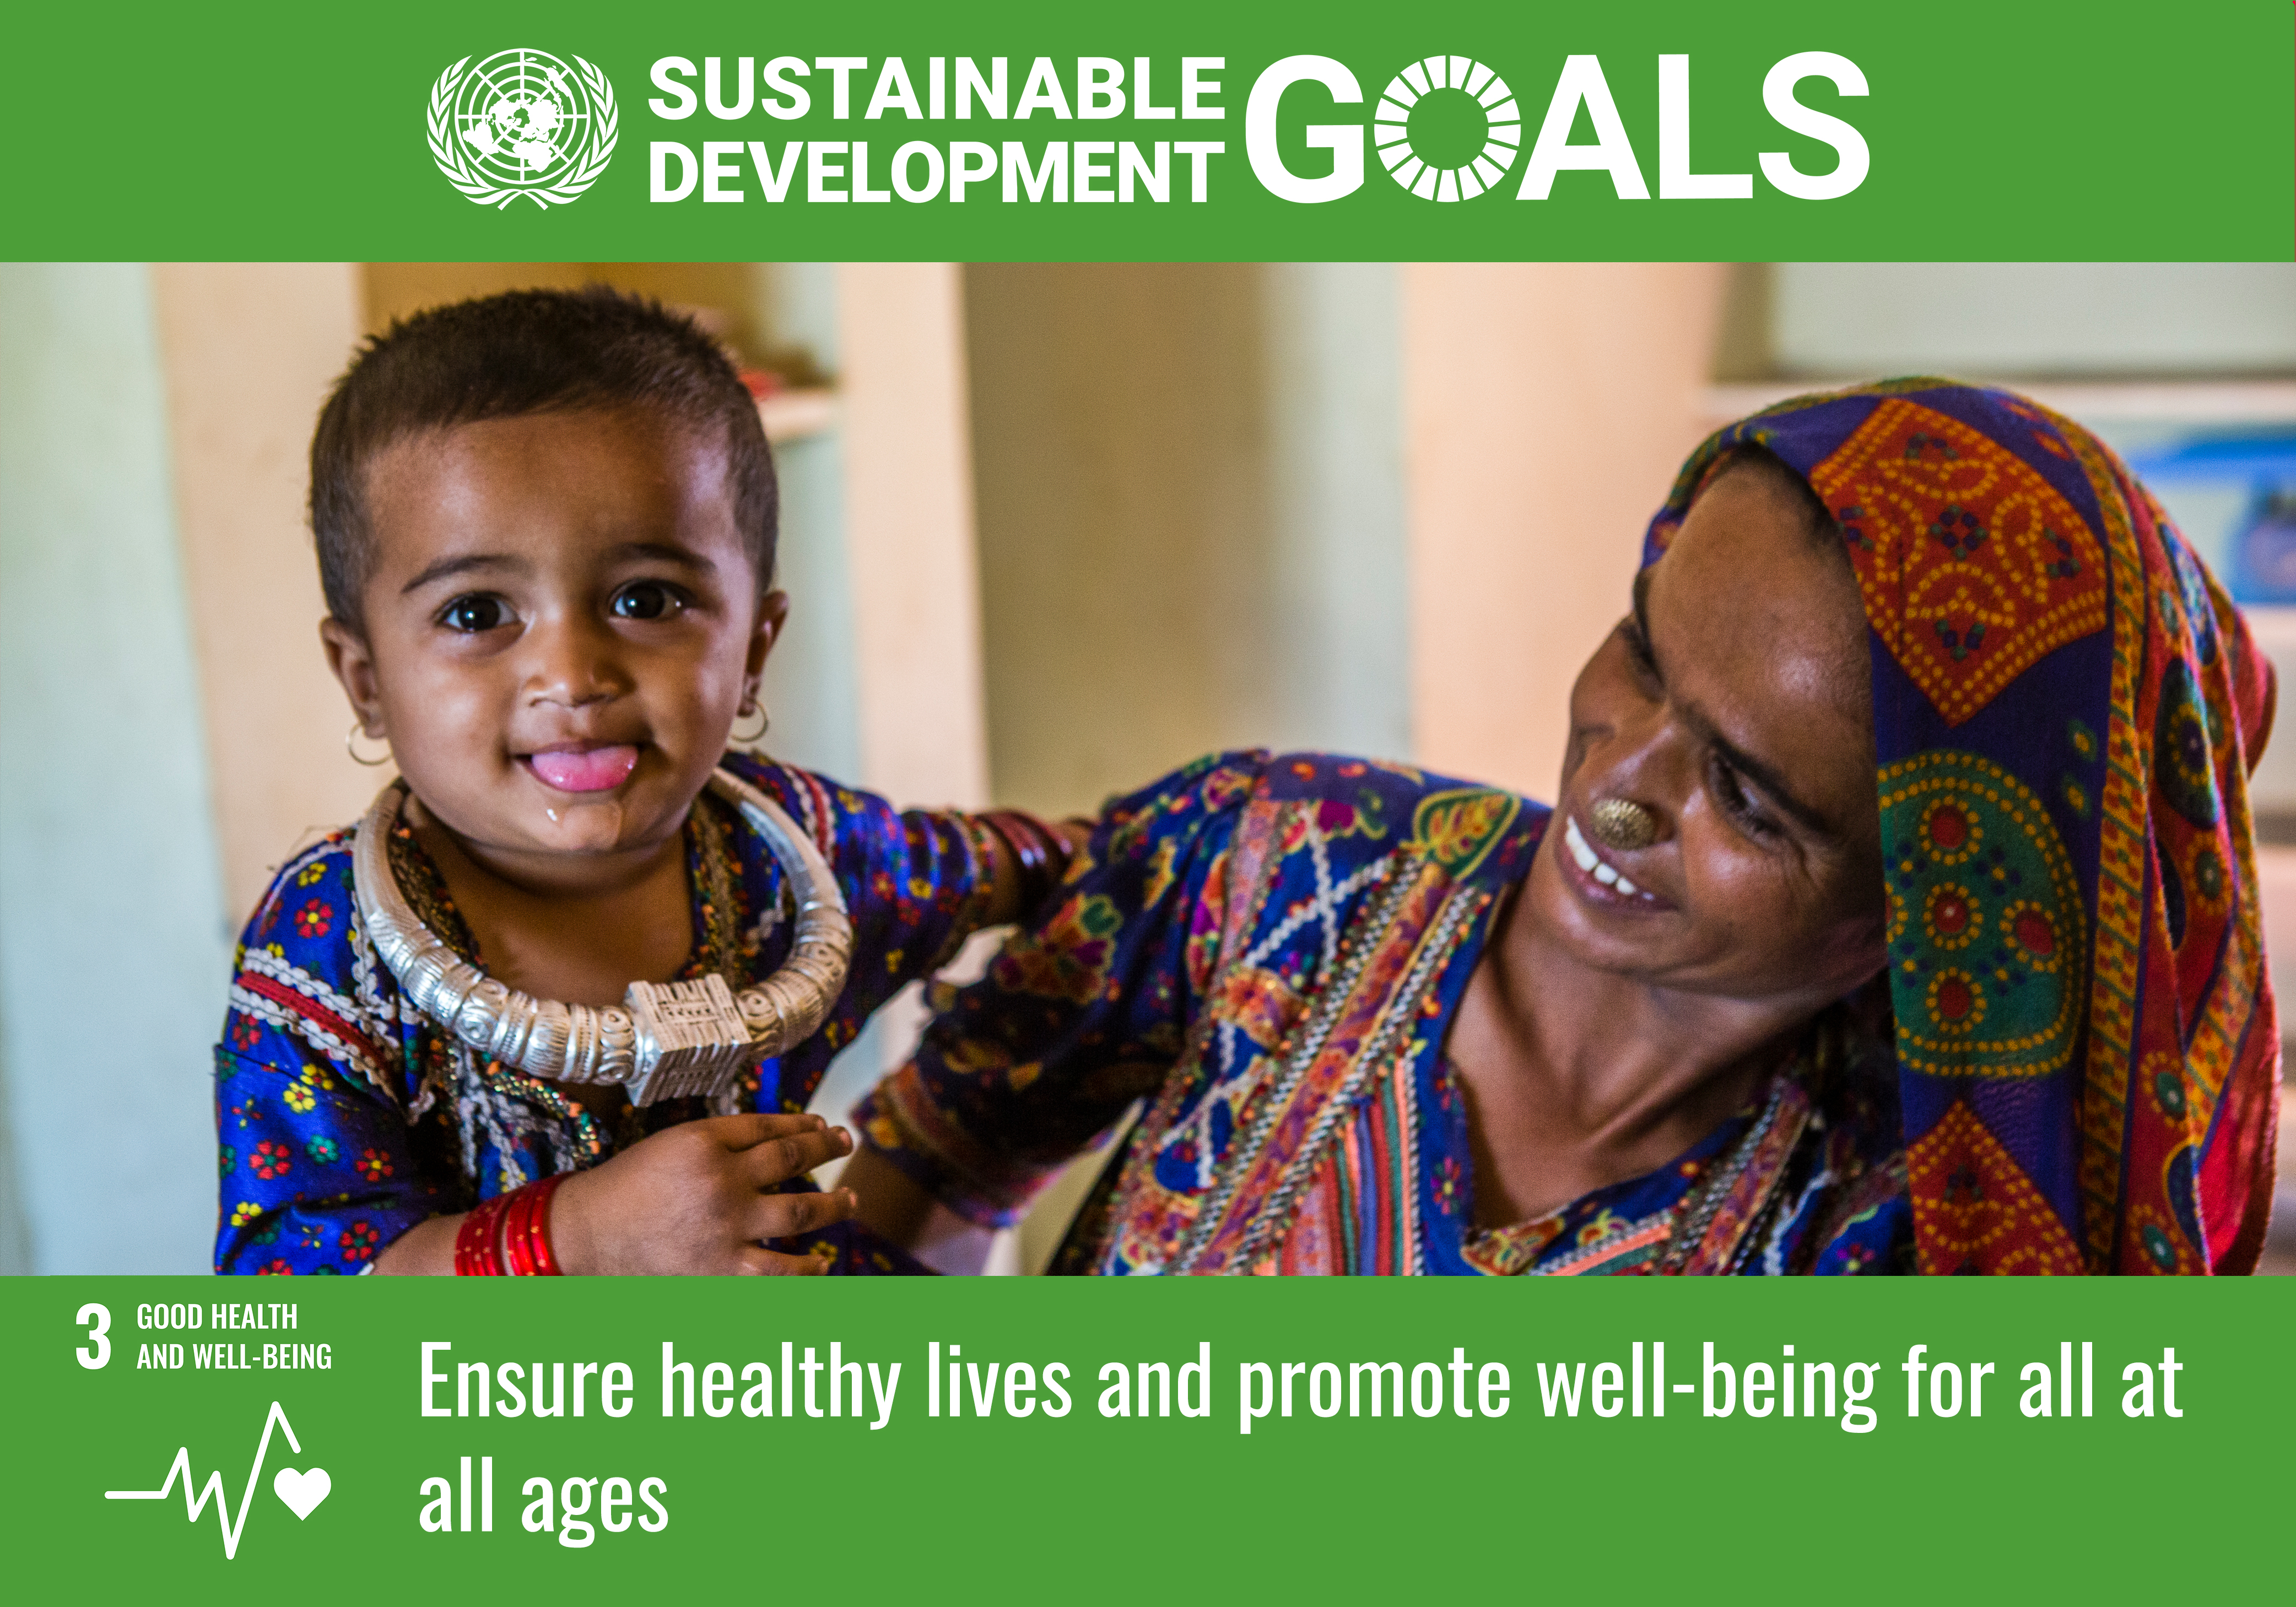 SDG 3: Good Health And Well-being